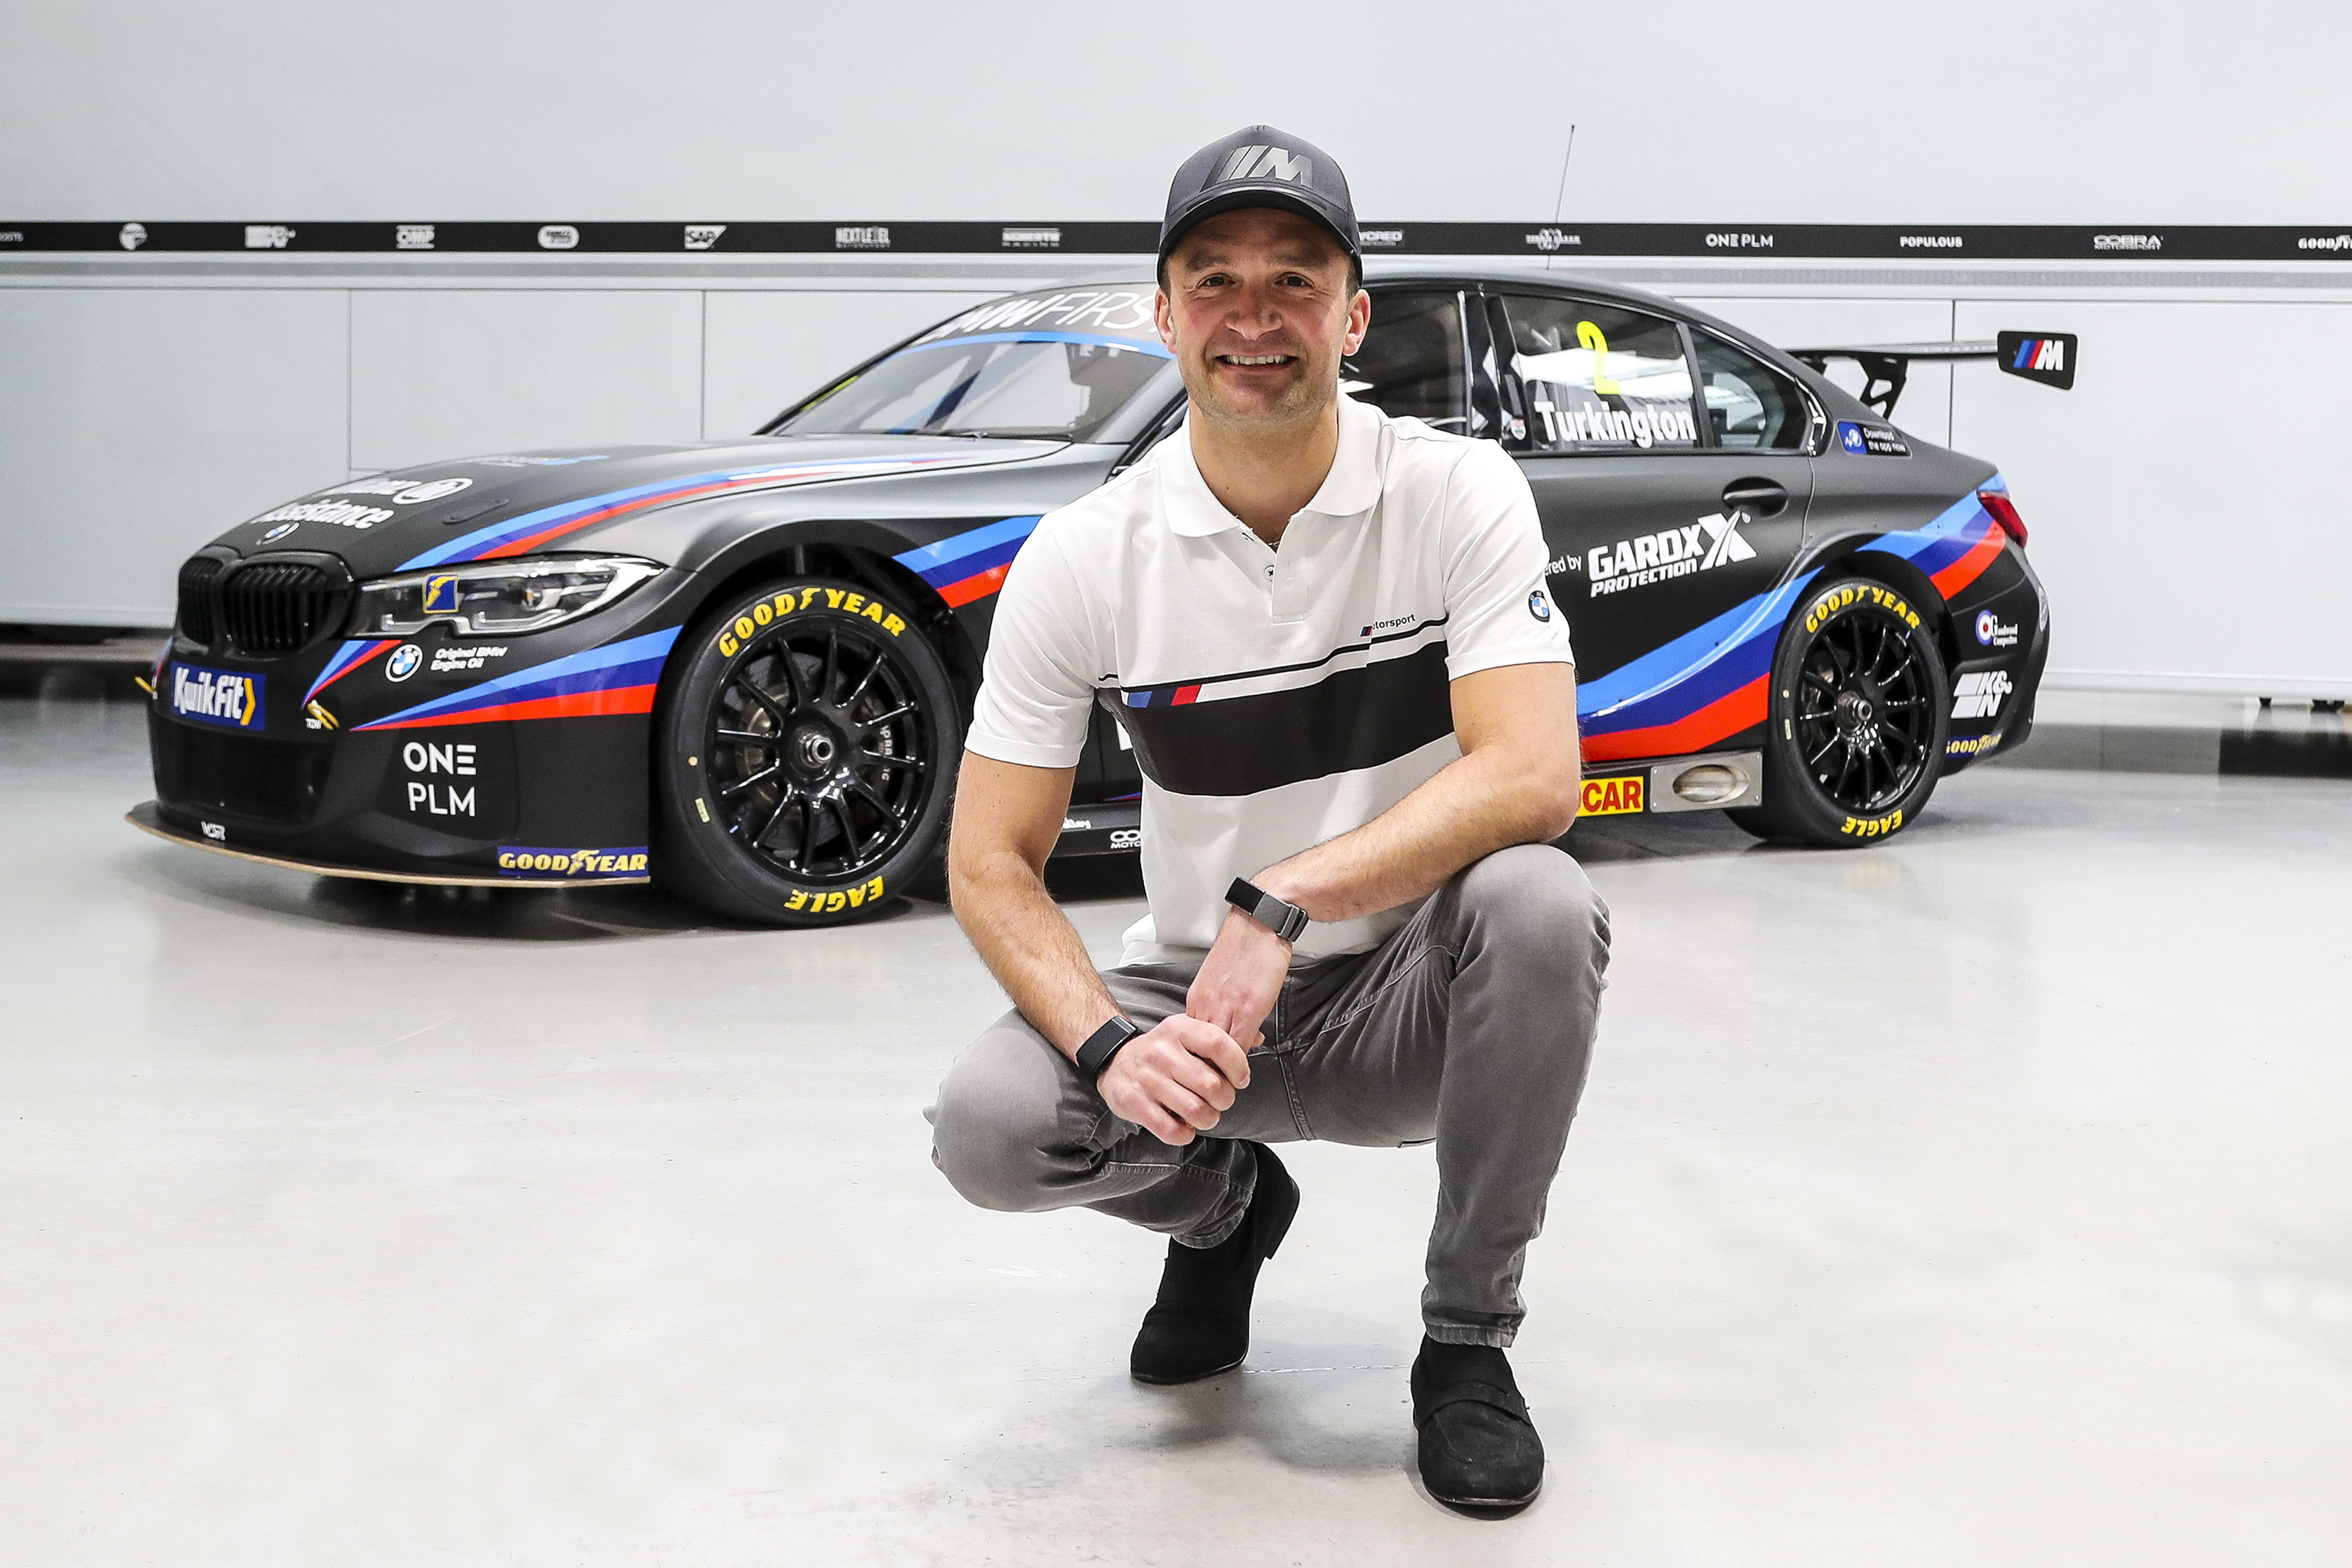 TEAM BMW UNVEIL A NEW AND ICONIC LOOK FOR 2021